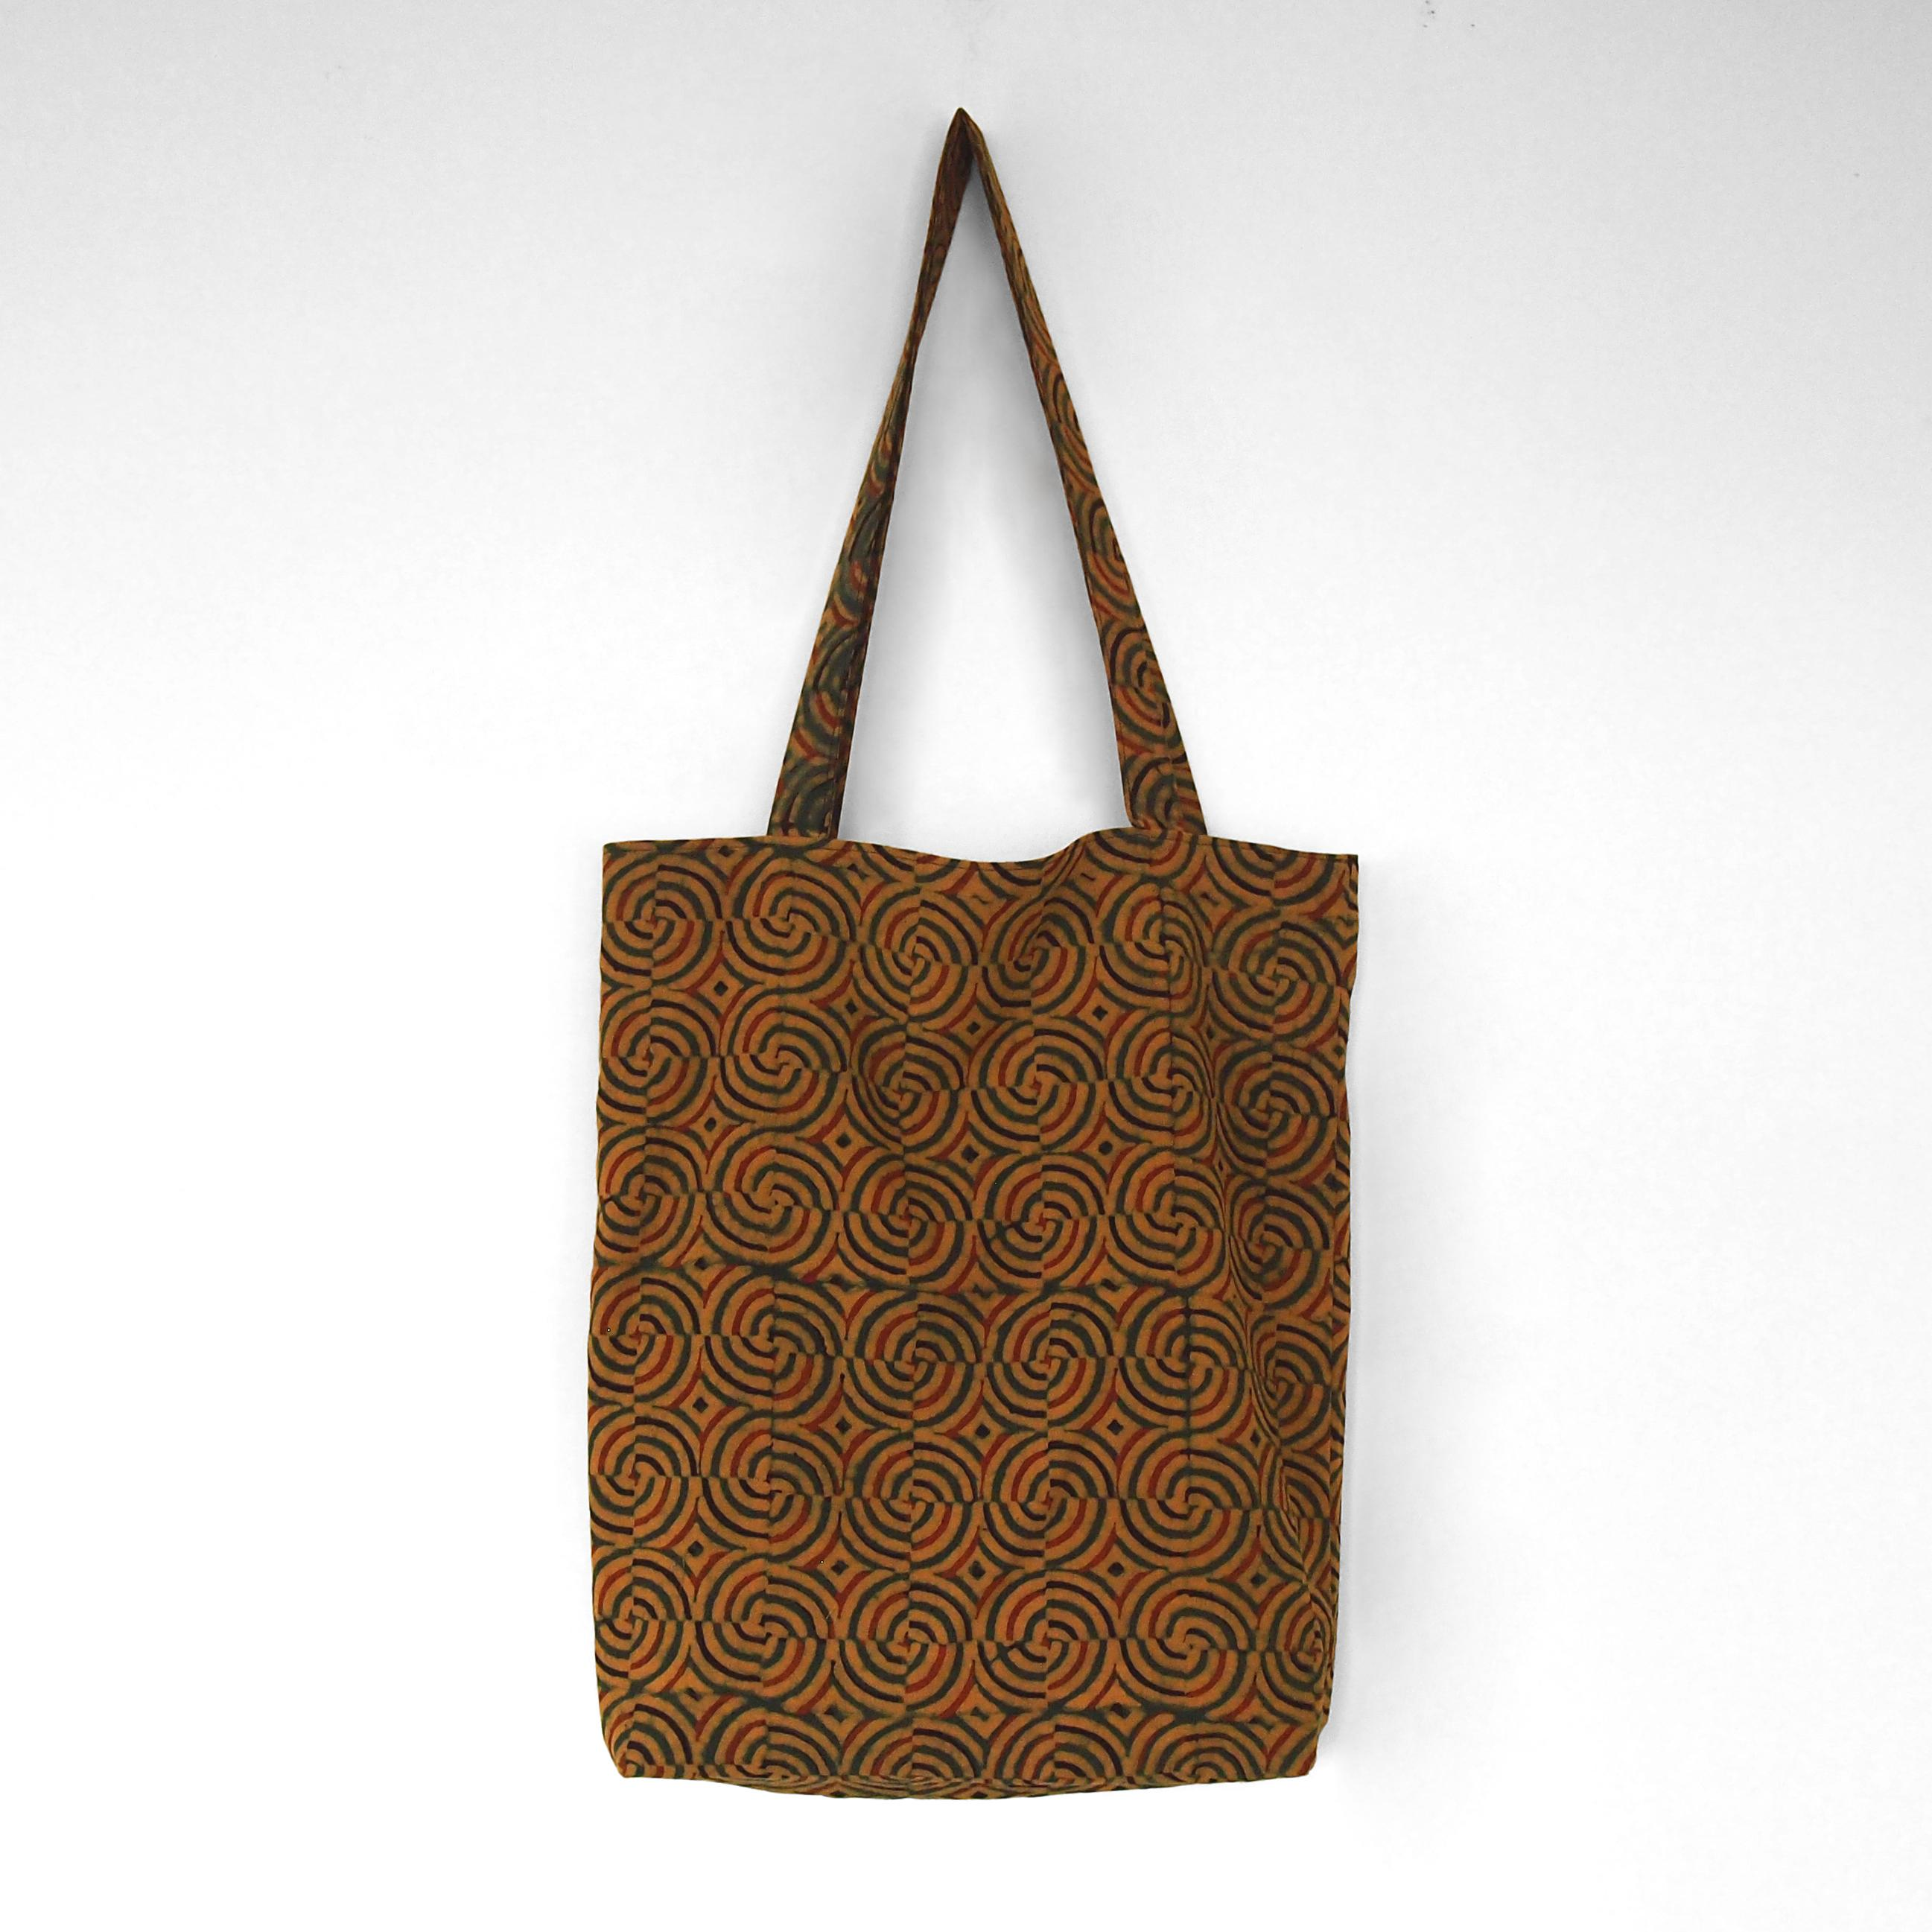 block printed cotton tote bag, yellow, green red black spiral design, natural dye, lined with black cotton, closed